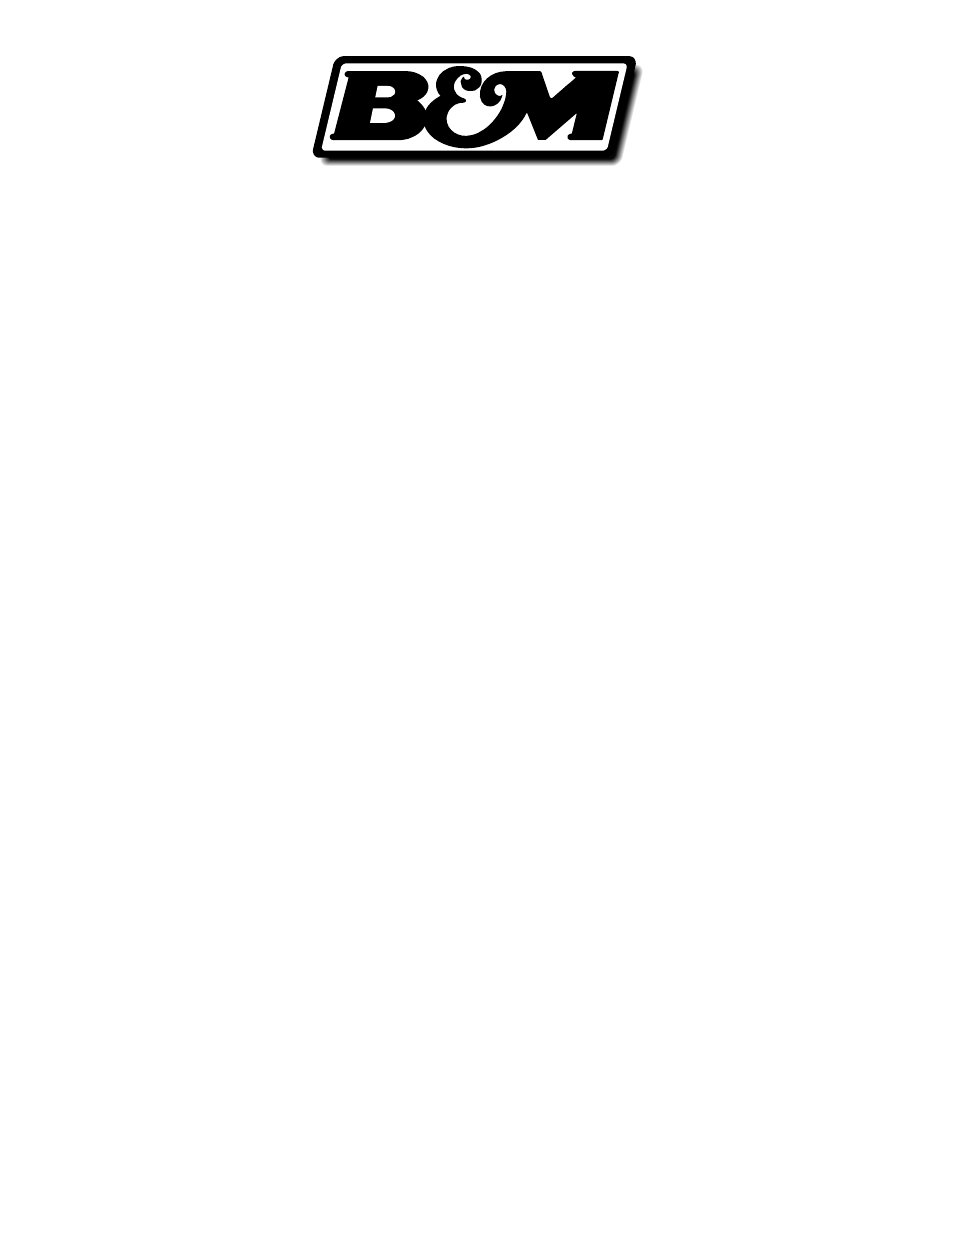 Bm 81121 Stealth Pro Ratchet Shifter User Manual 8 Pages Also